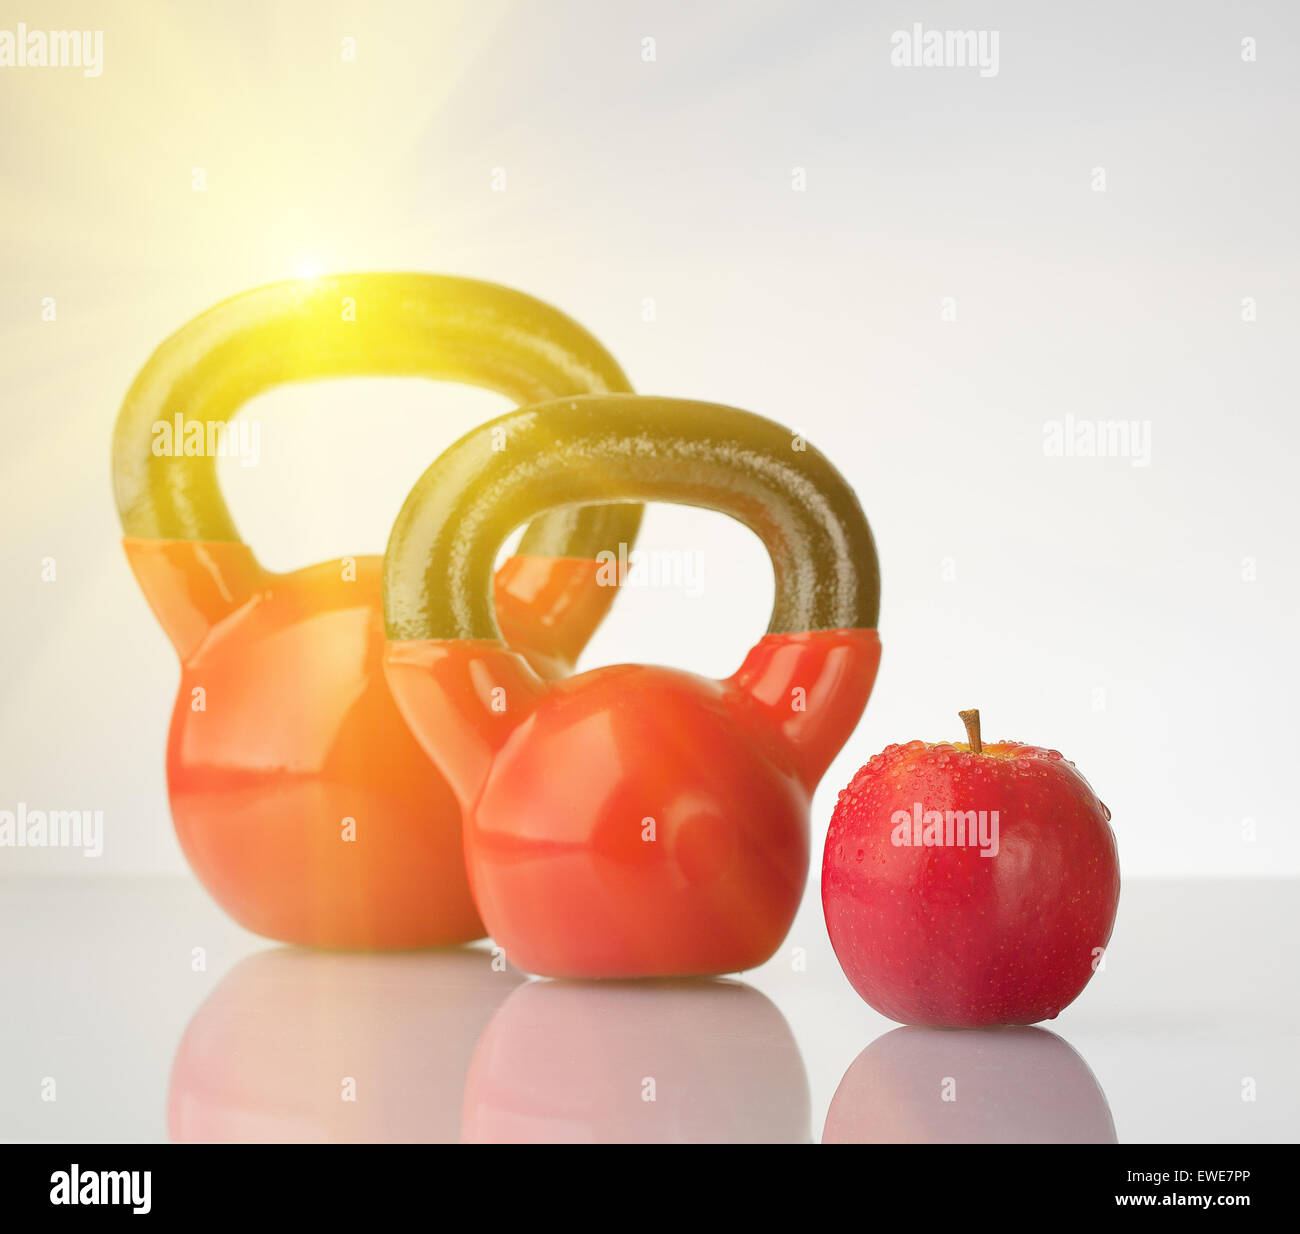 Red apple and kettlebells on reflective surface with flare - Stock Image